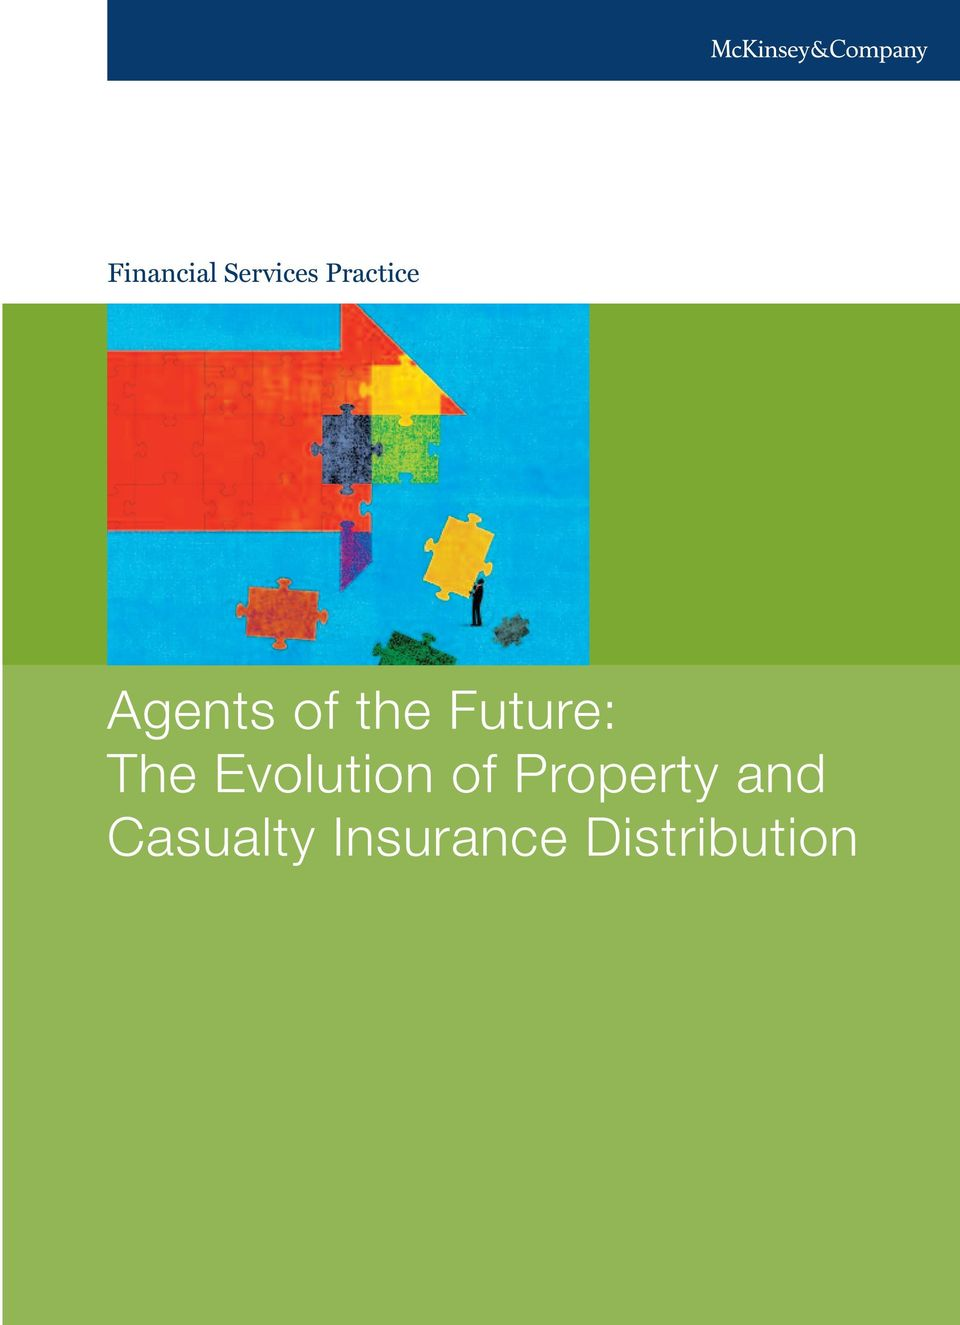 Evolution of Property and